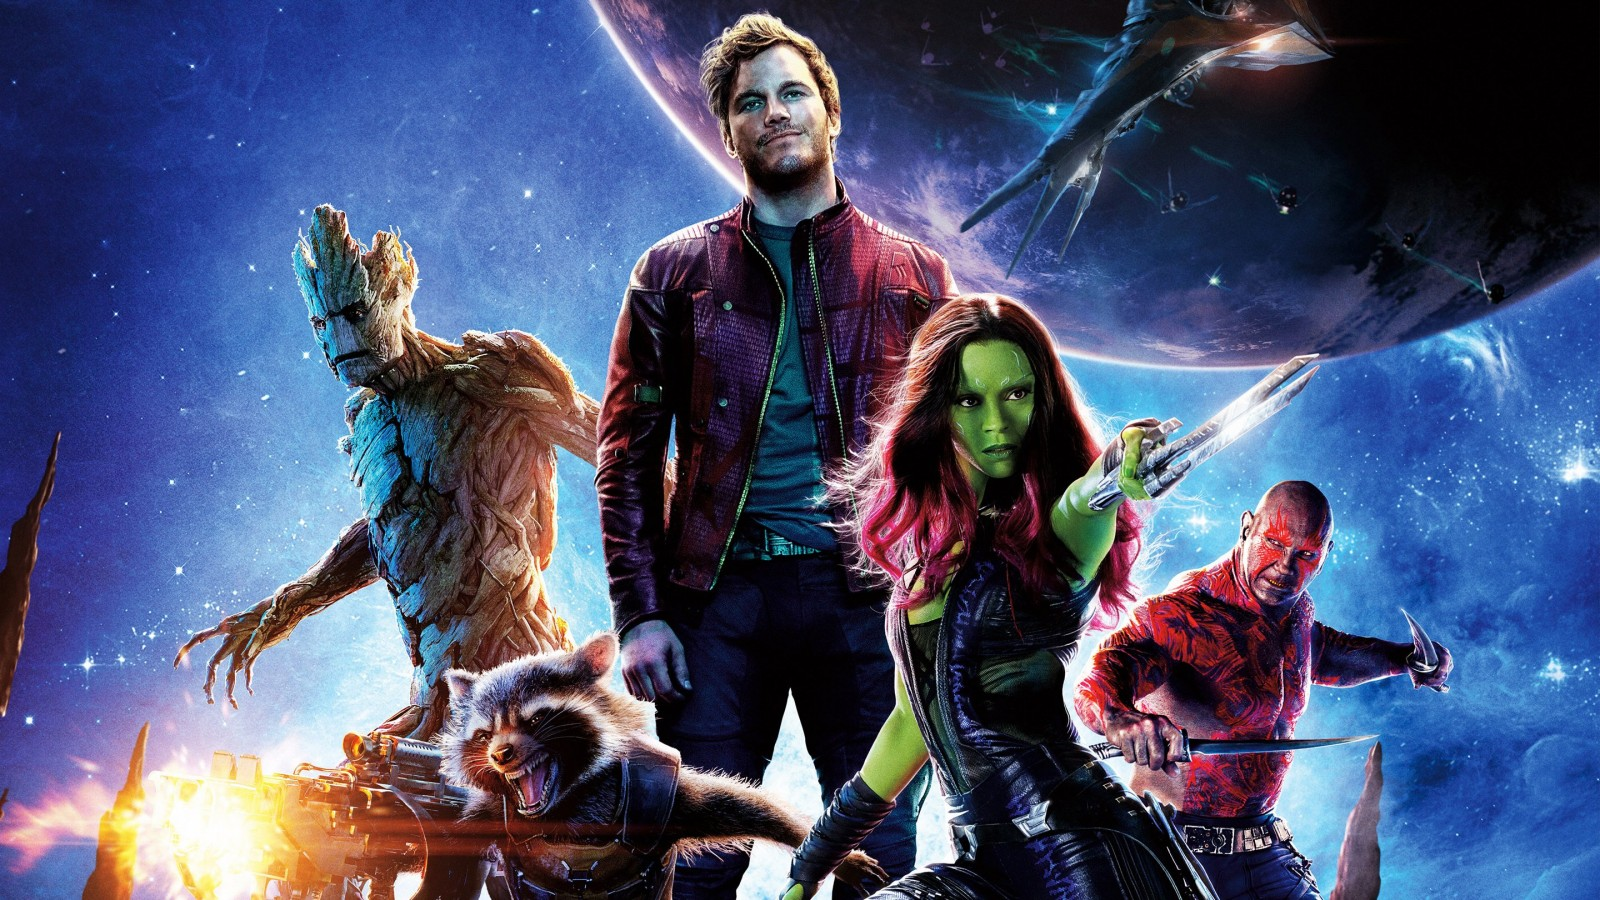 Guardians of the Galaxy Wallpaper for Desktop 1600x900